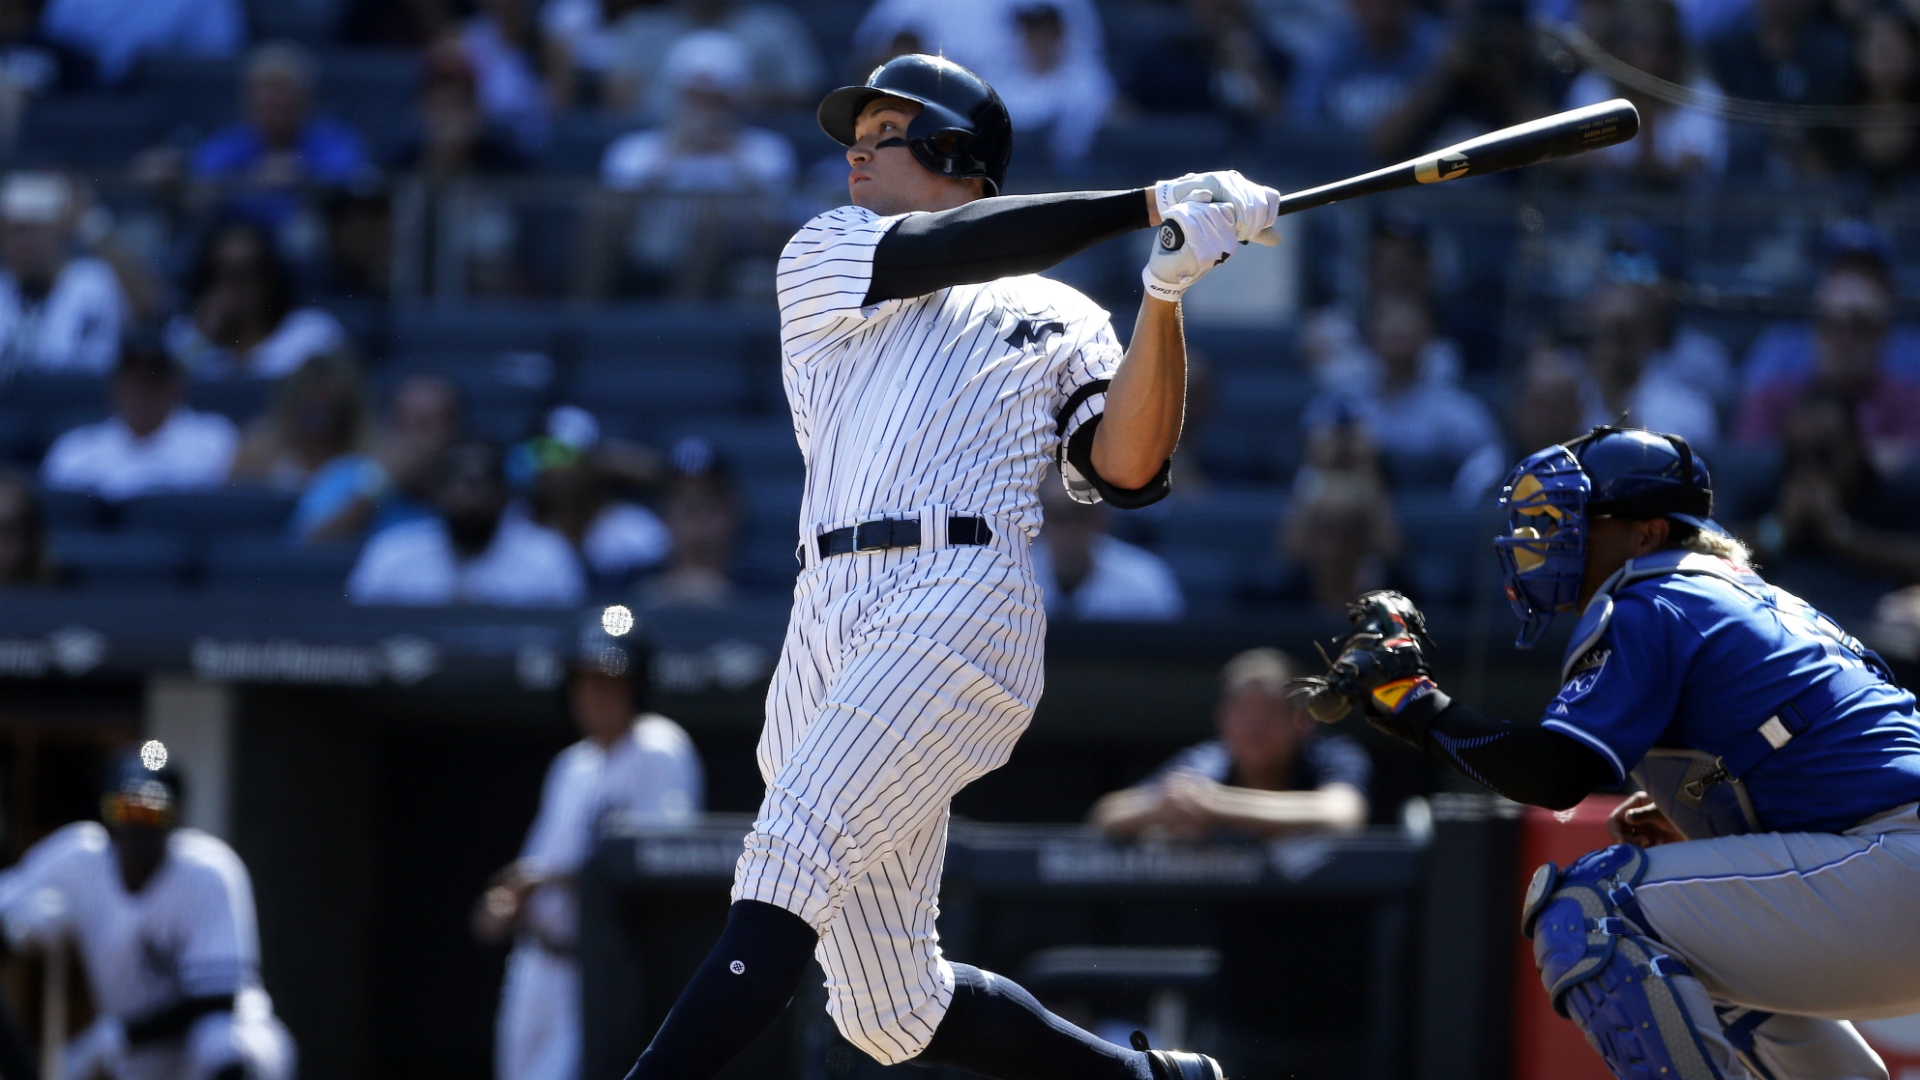 Aaron Judge sets new record as quickest MLB player to reach 70th HR